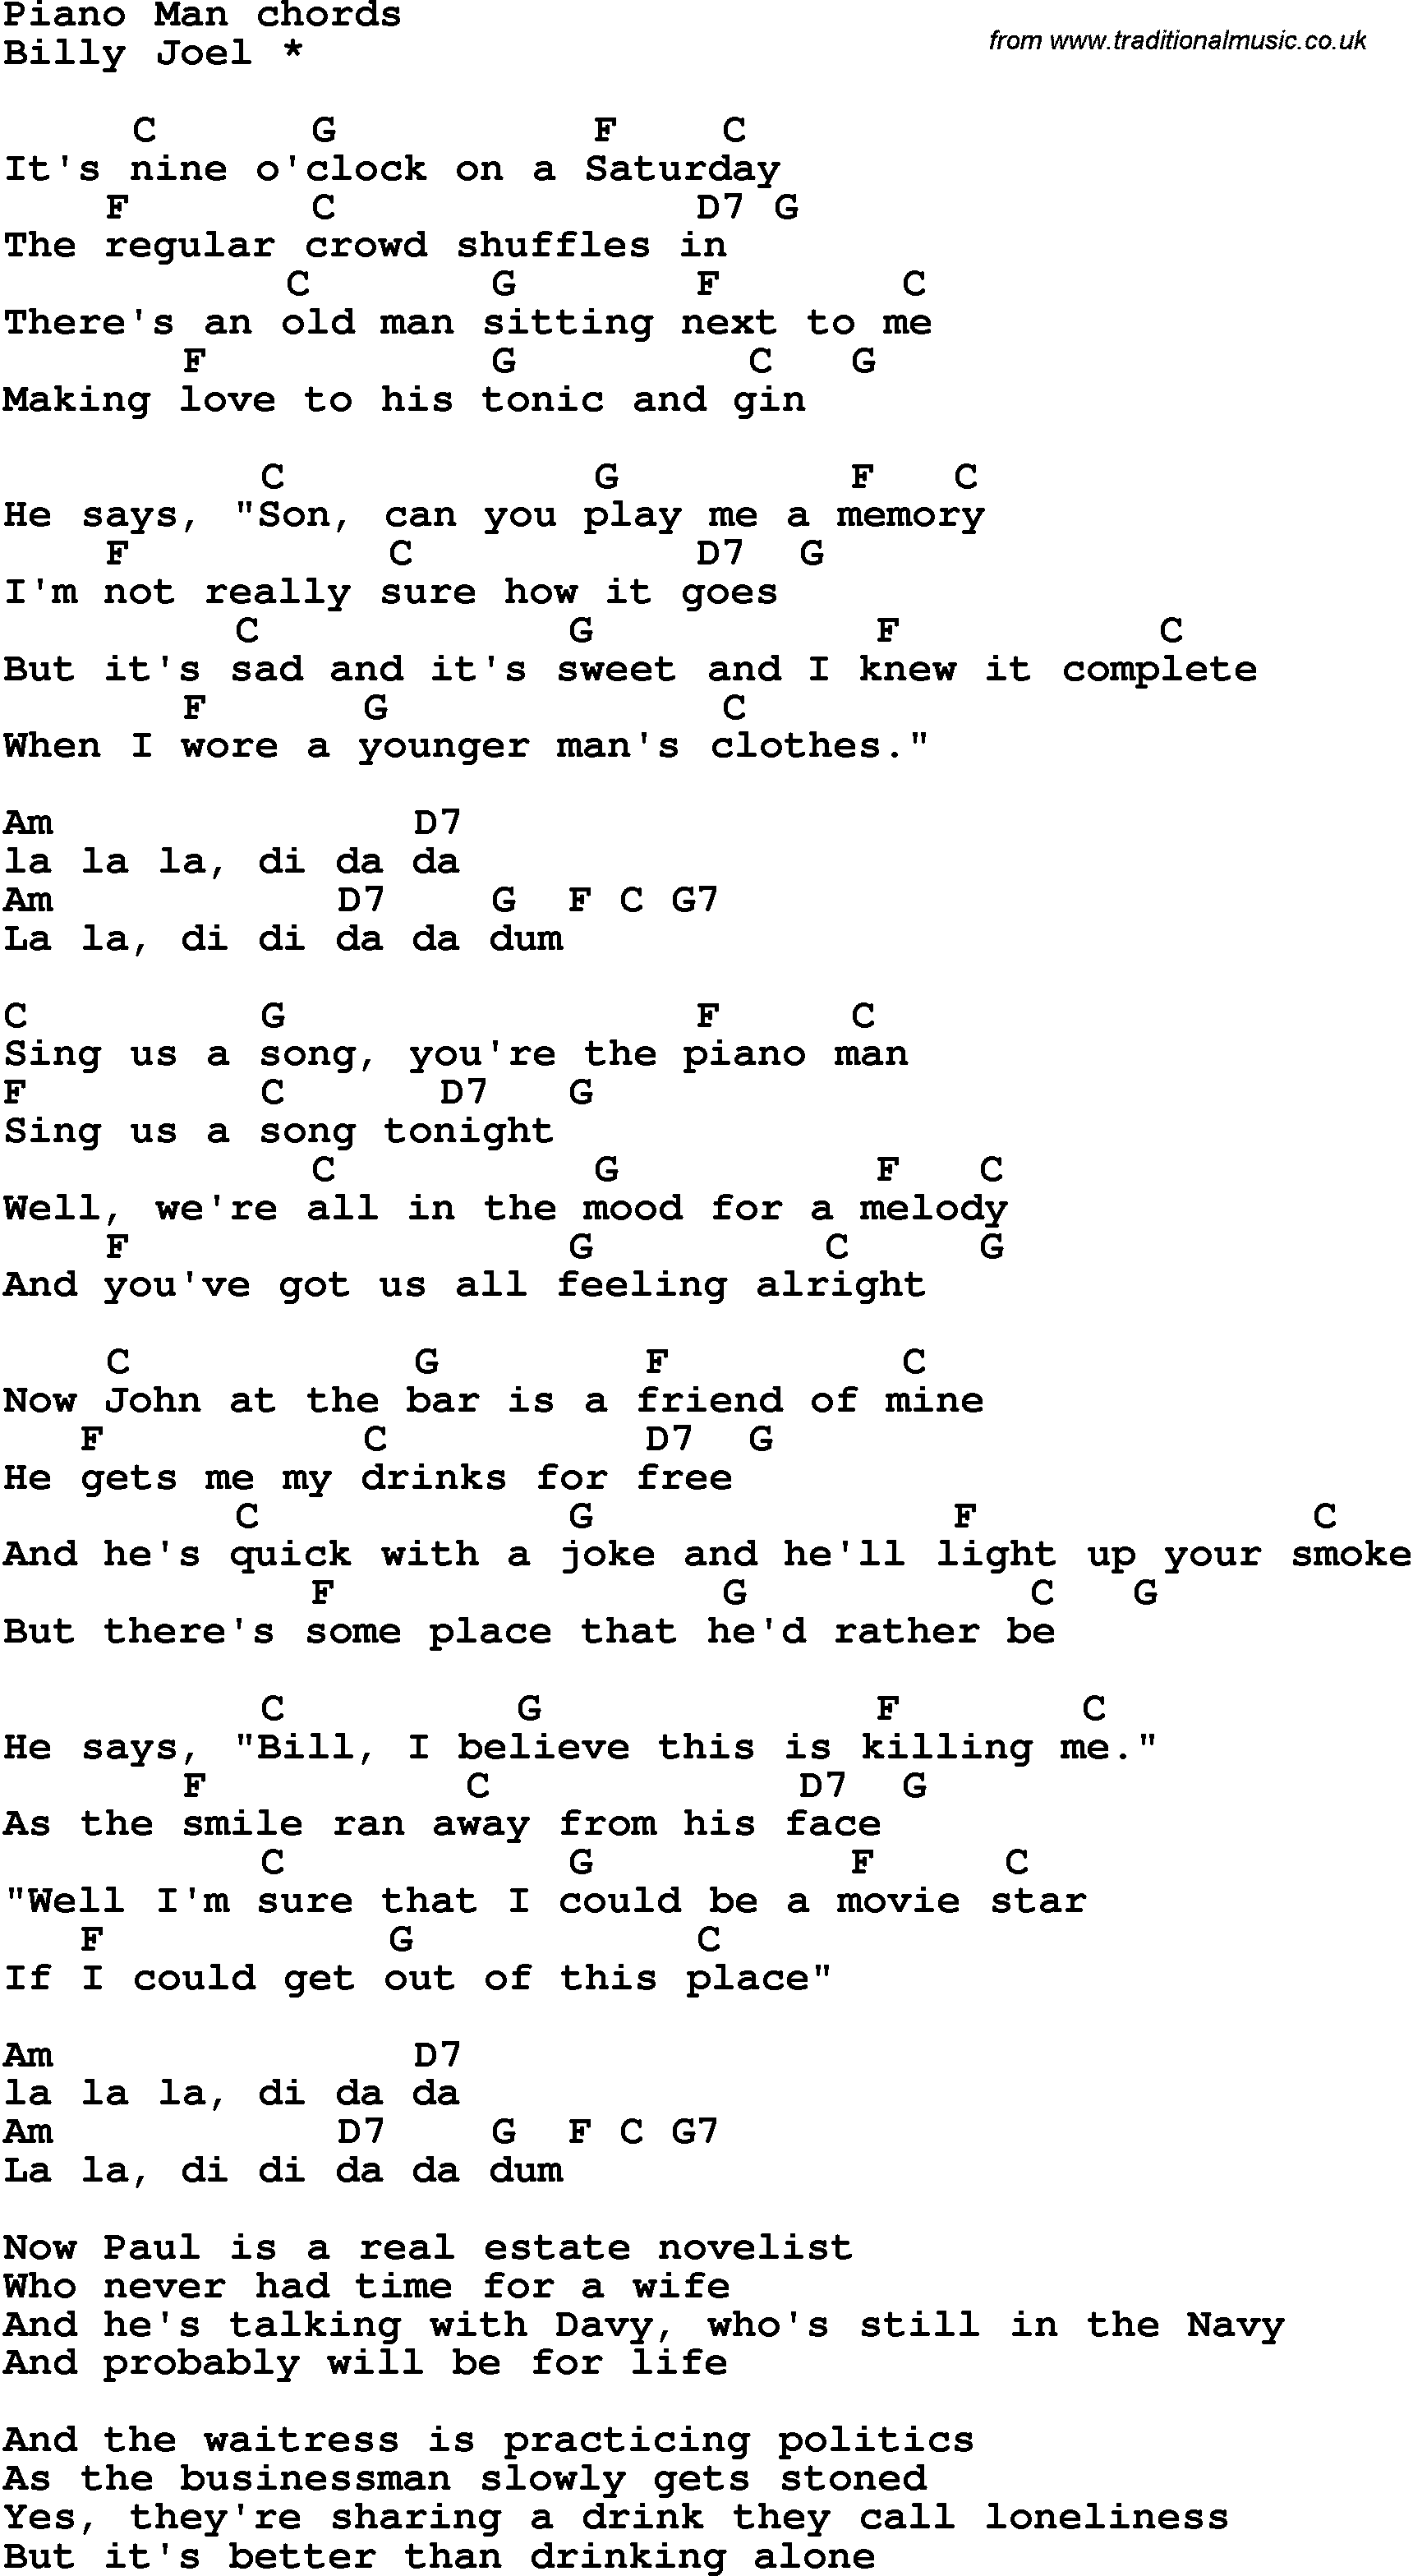 Song lyrics with guitar chords for Piano Man